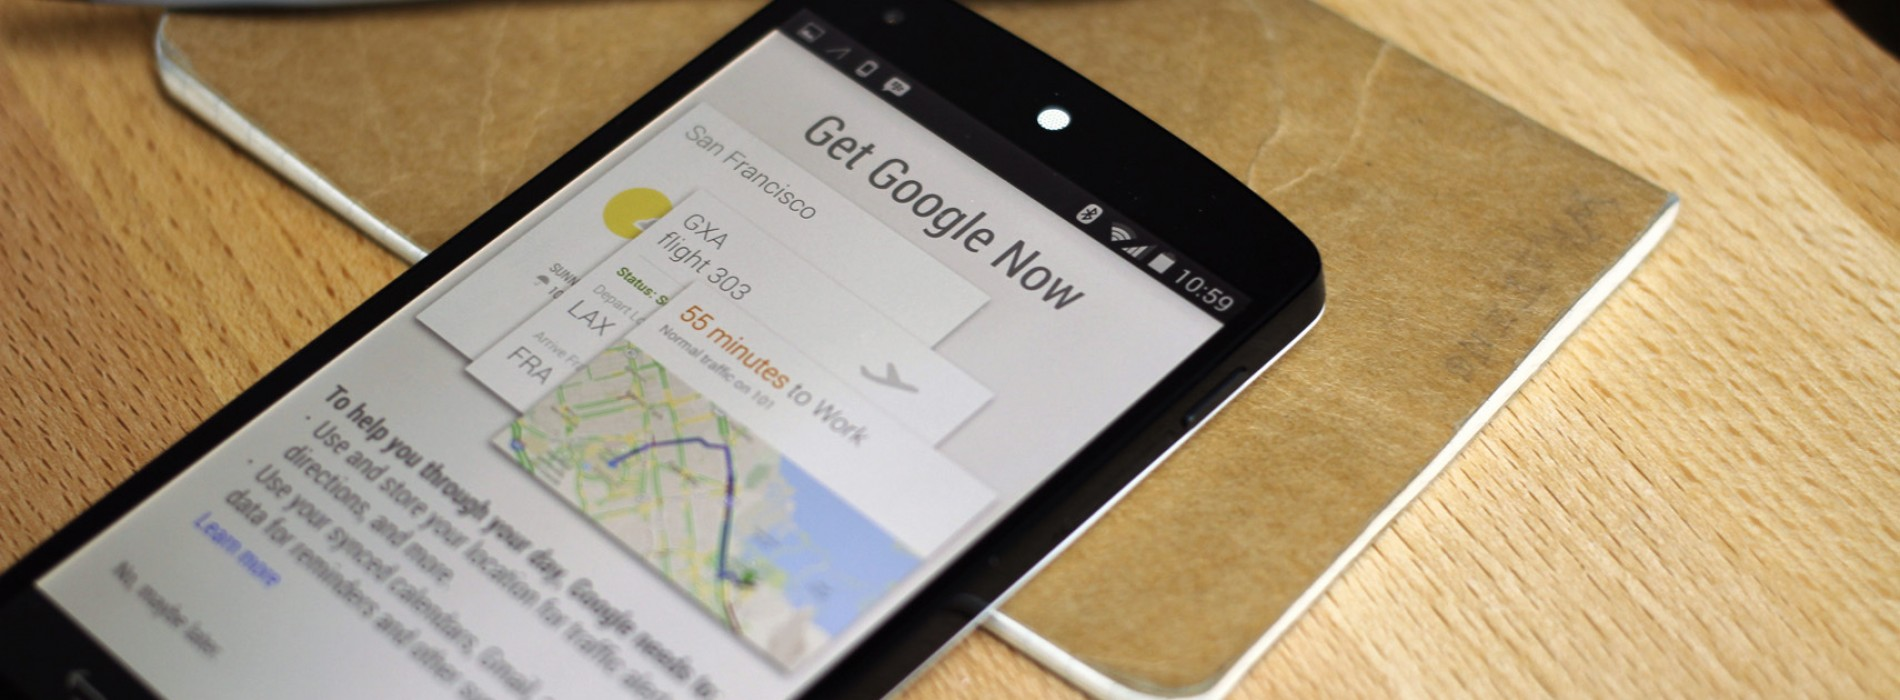 Google Now is going to make sure you don't miss your exit, ever again